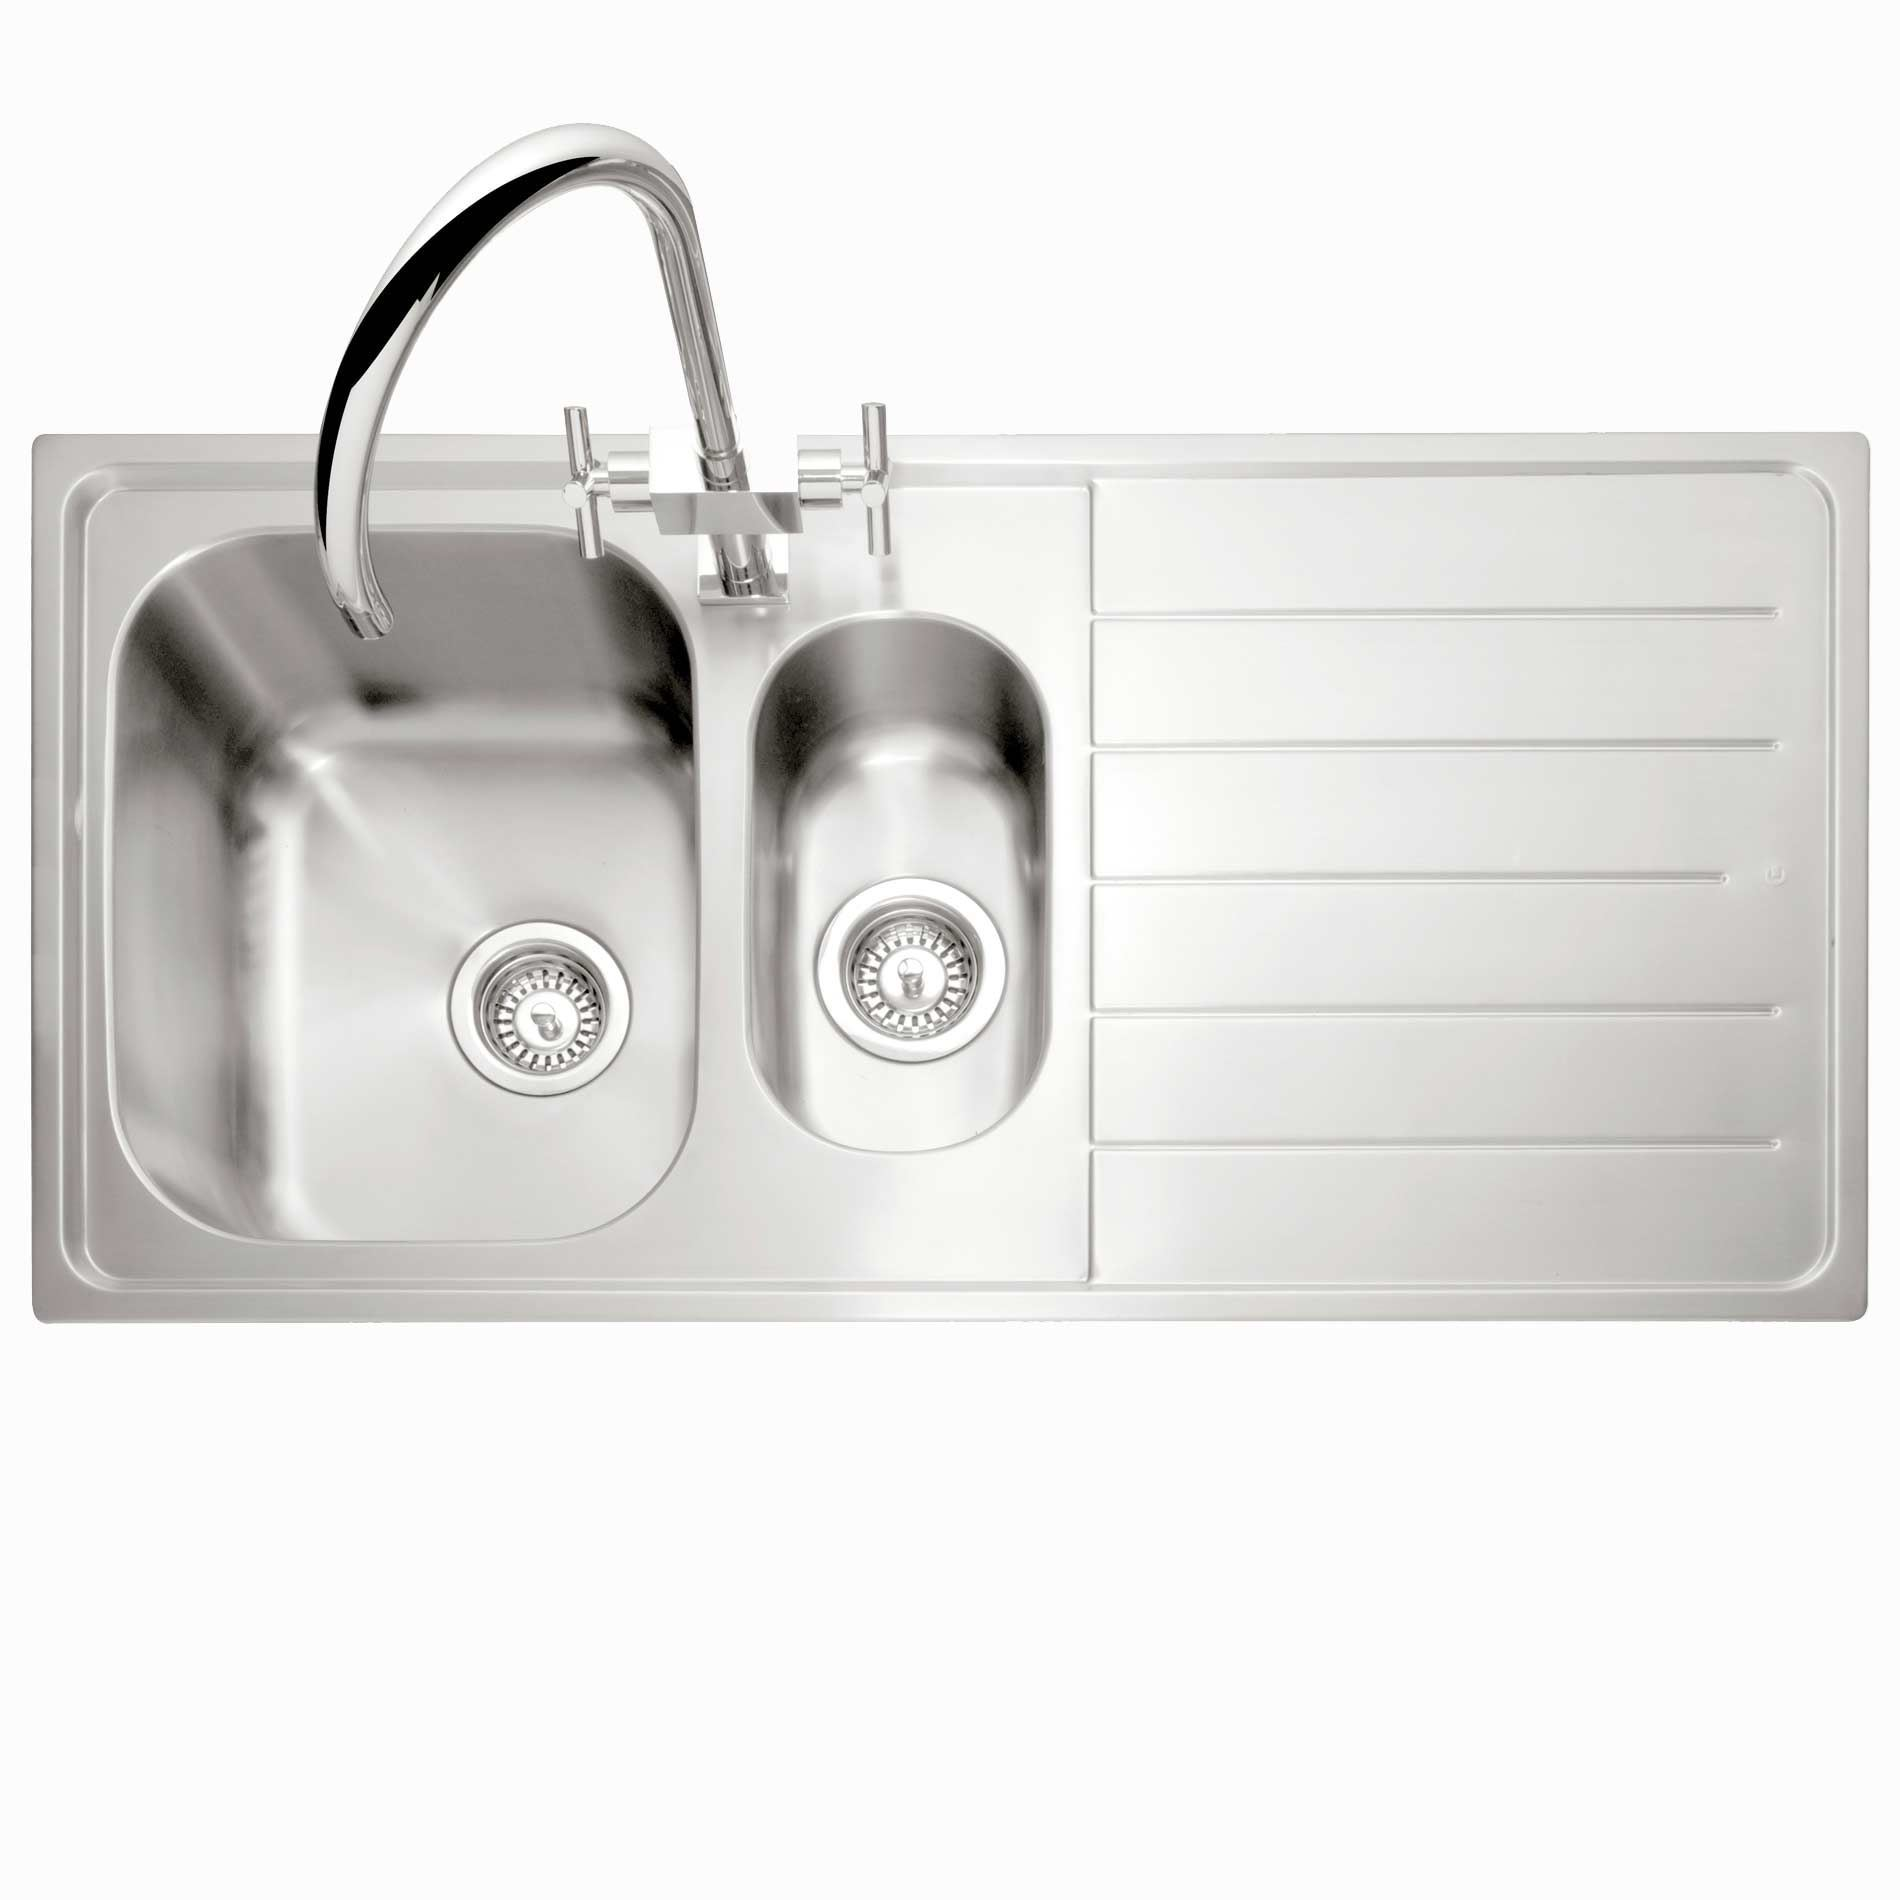 Caple: Lyon 150 Stainless Steel Sink - Kitchen Sinks & Taps